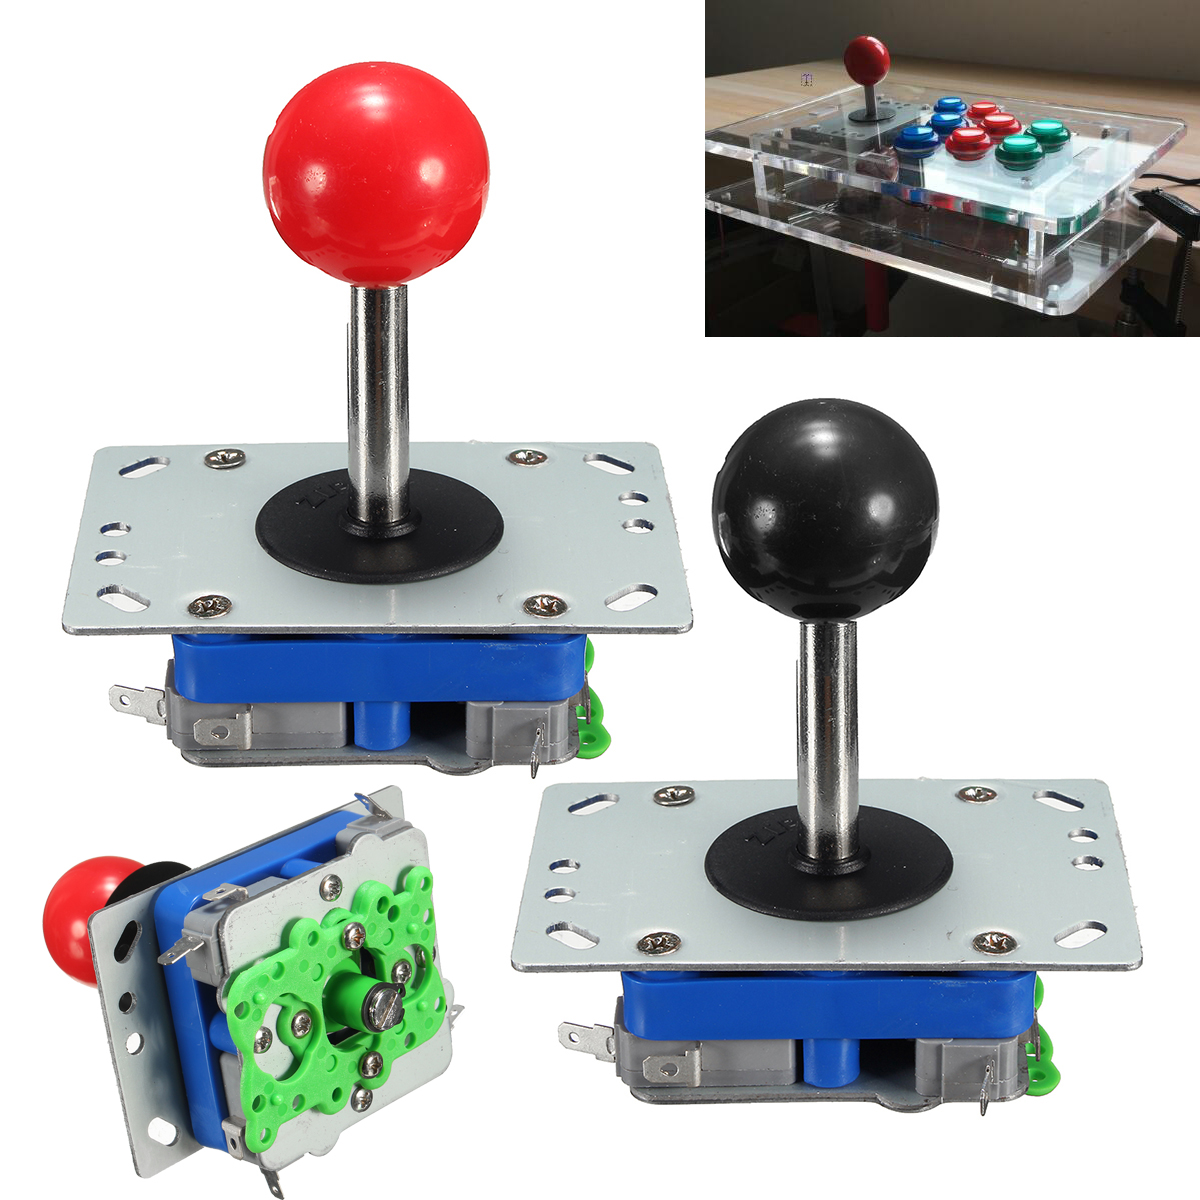 Classic 4/8 way Arcade Game Joystick Ball Zippy Joy Stick Long Handle